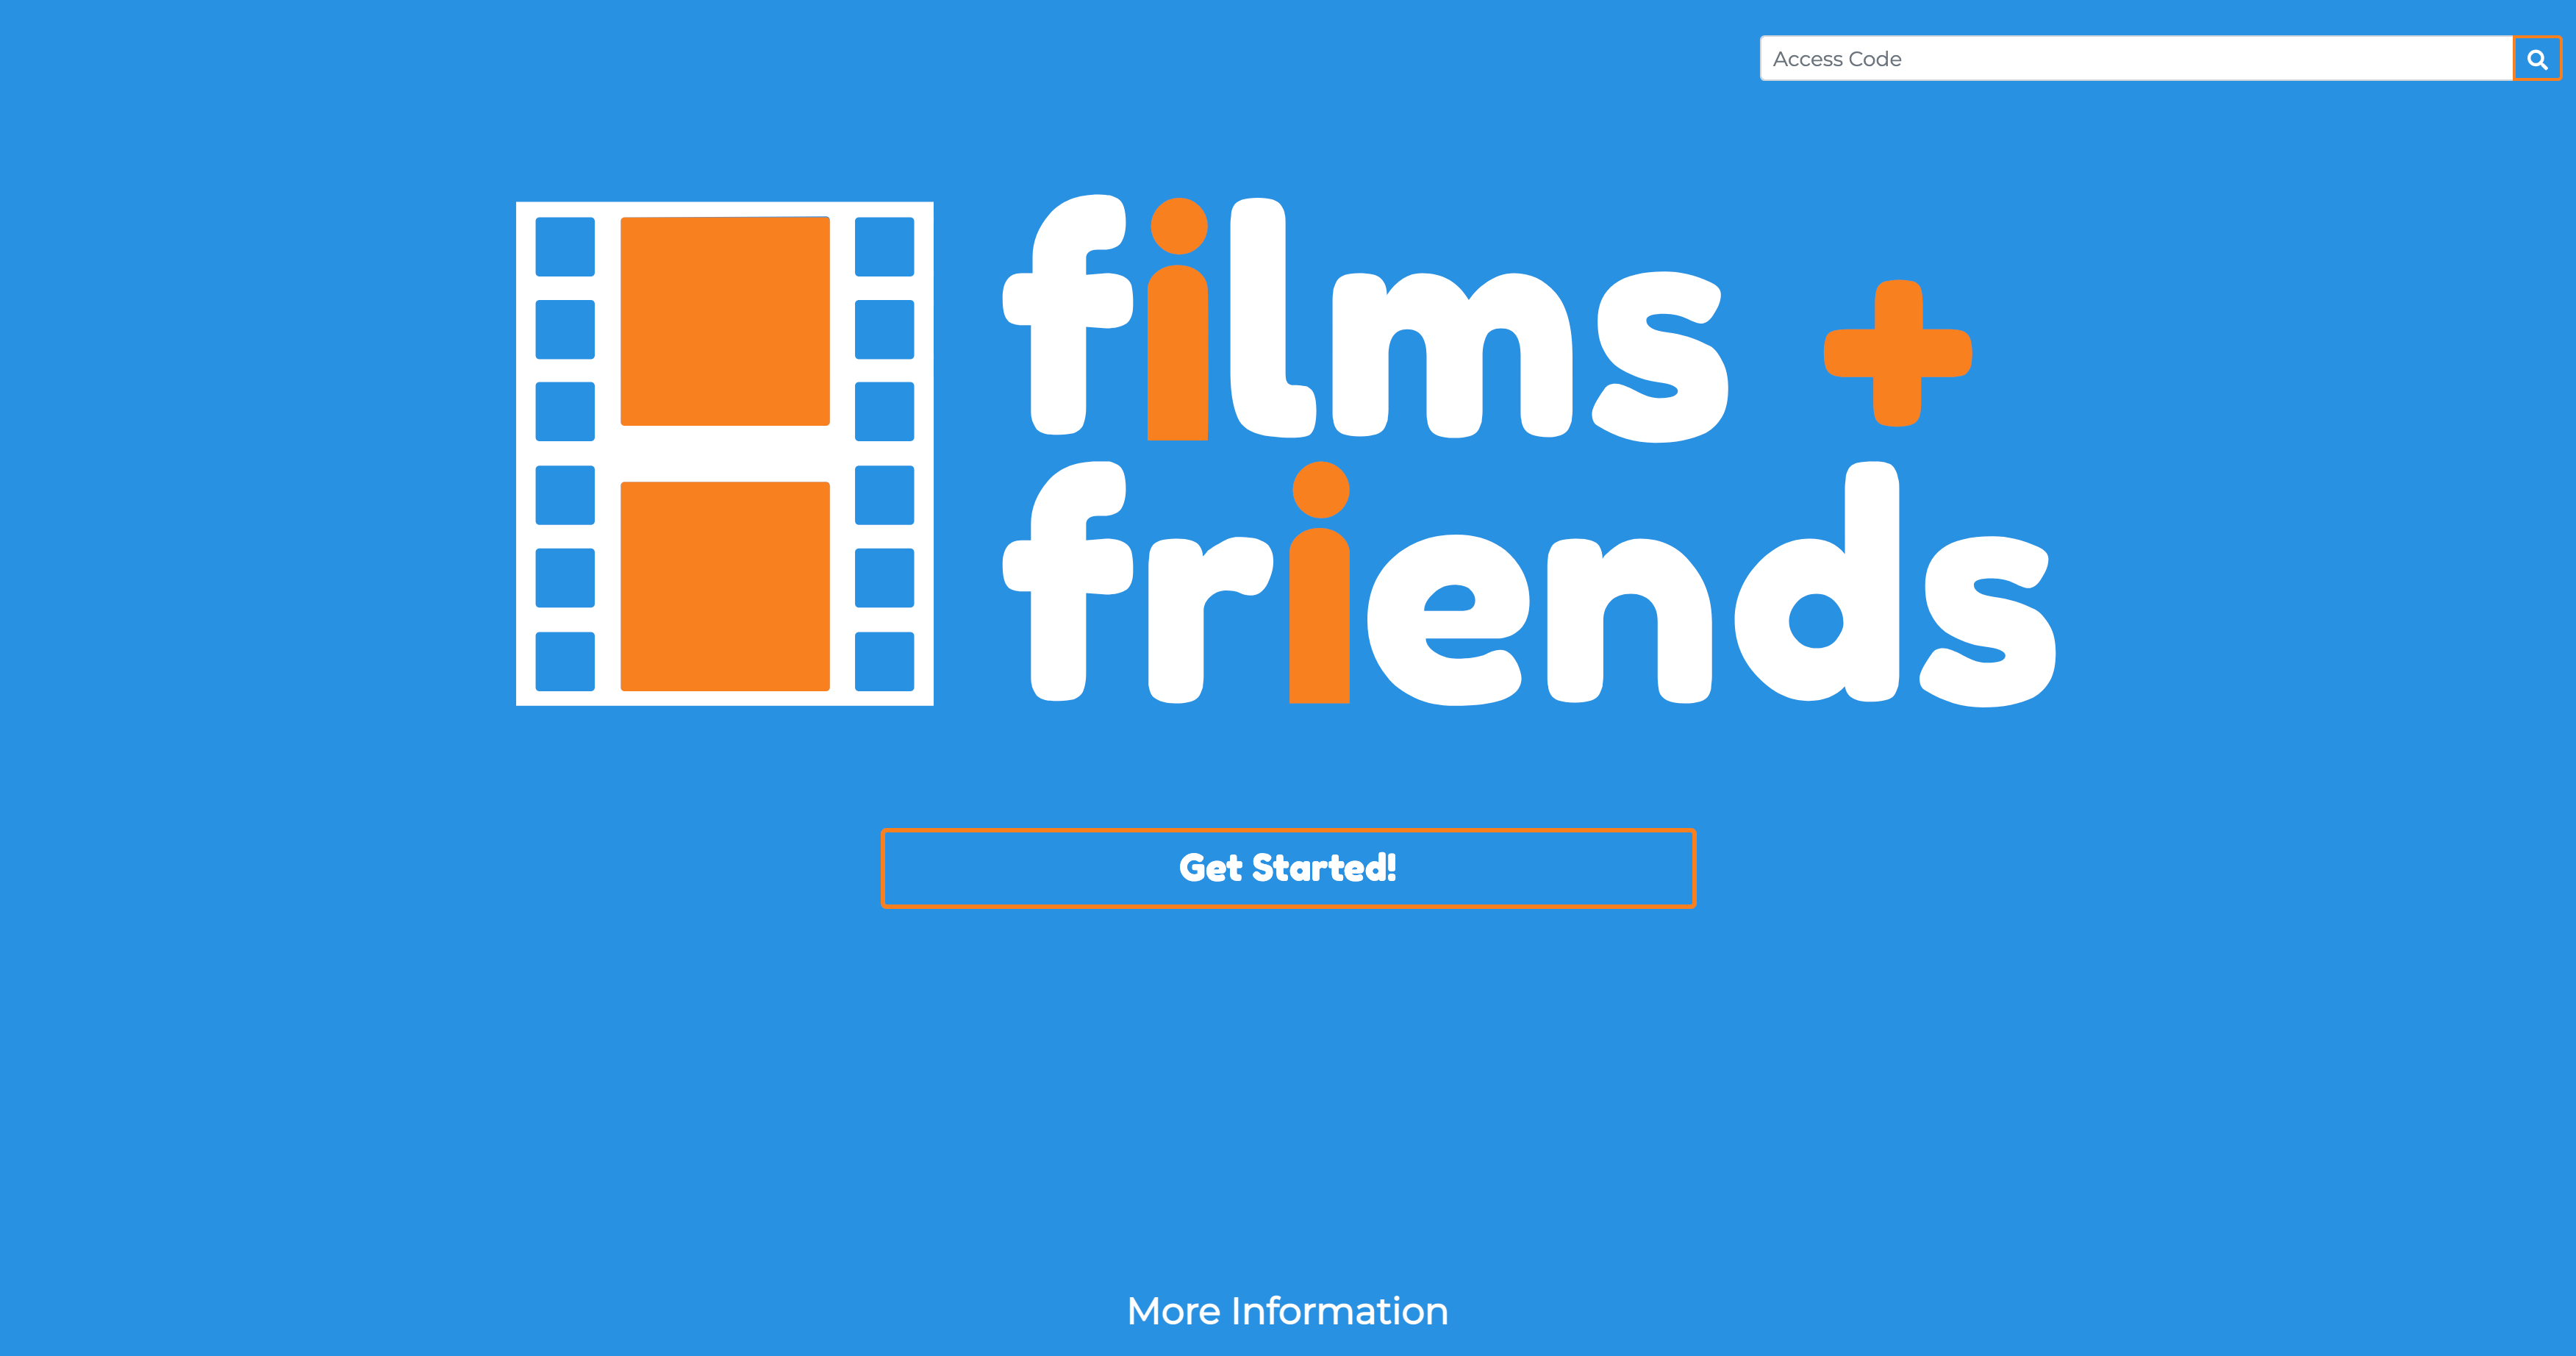 Films + Friends is a service aimed at helping users plan what movies to watch with their friends.